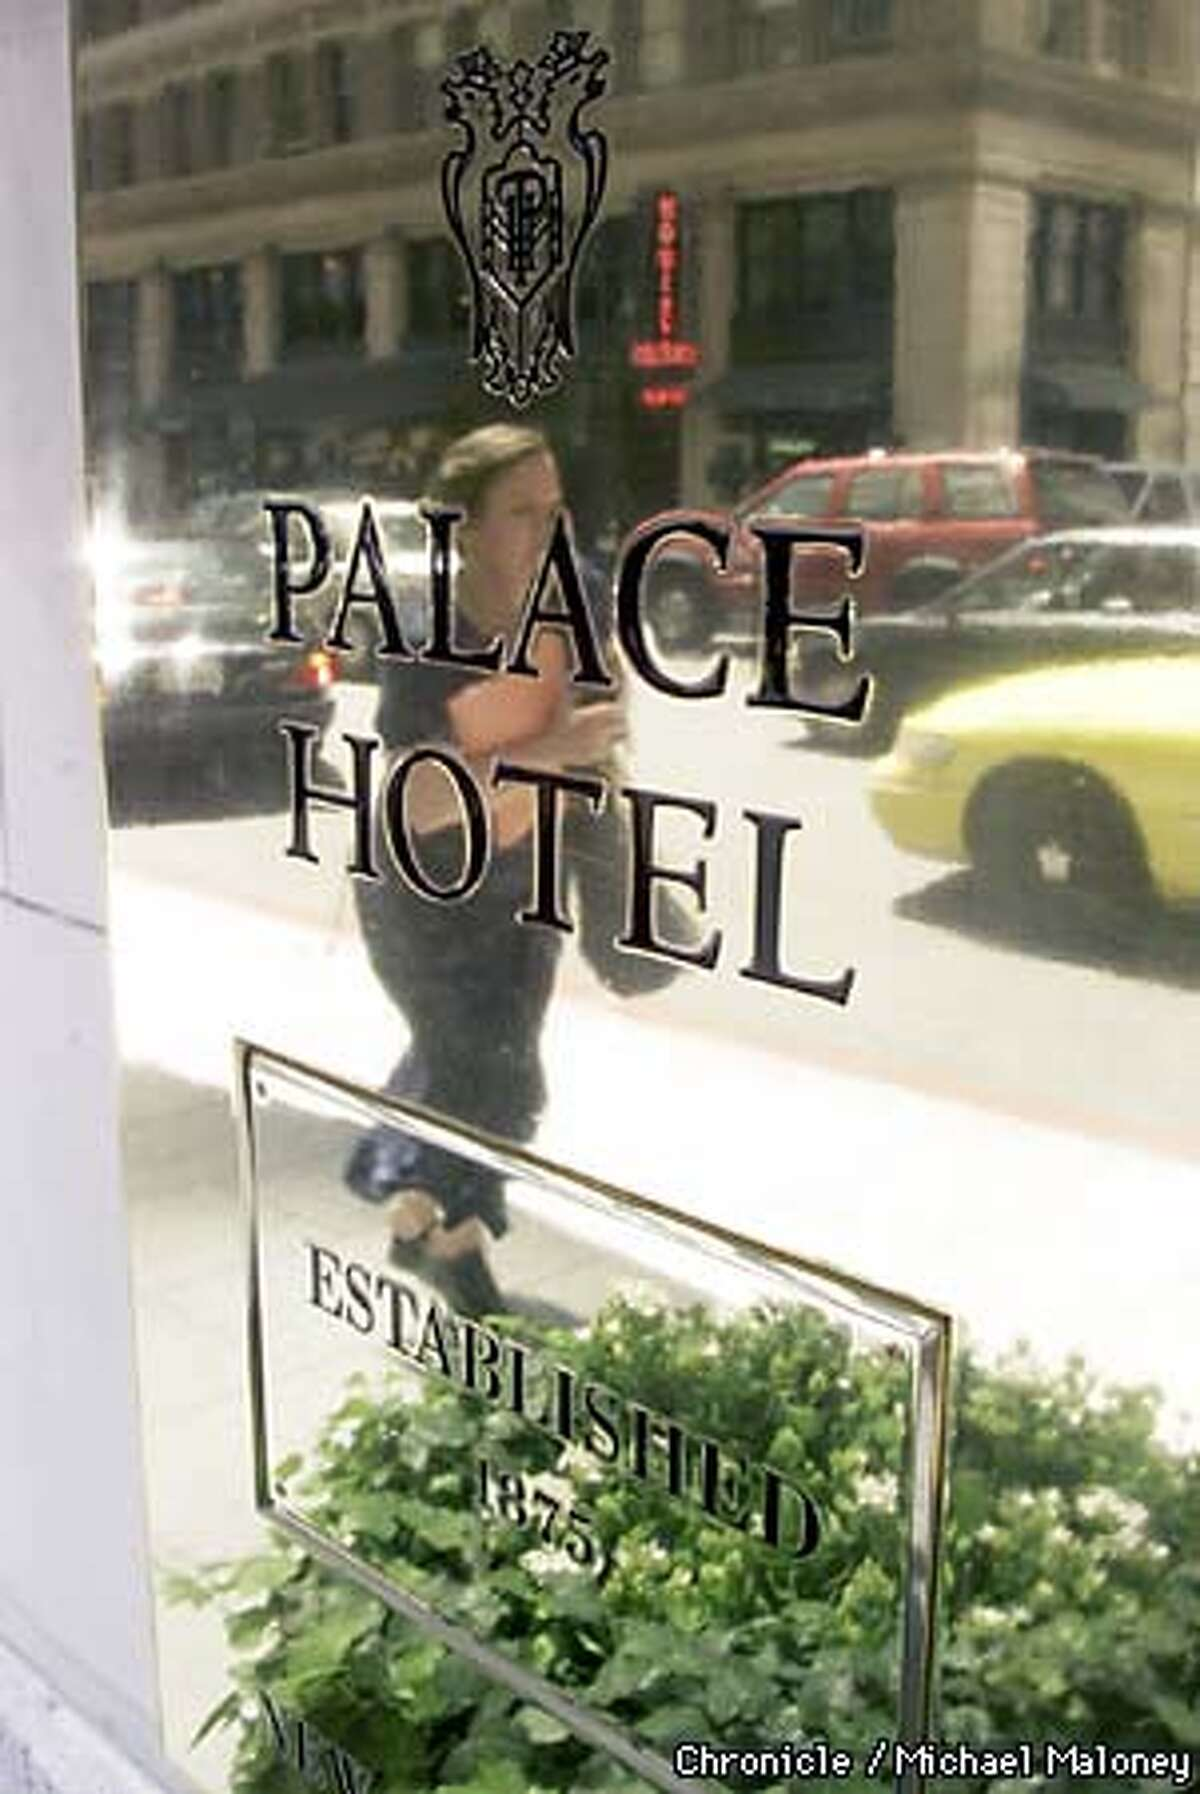 A pedestrian is reflected in a plaque outside the Palace Hotel on New Montgomery Street. The newly proposed Gold Coast Trail takes walkers by this historic hotel built in 1875. Both the Barbary Coast Trail and the Gold Rush Trail are in competition with each other to become THE historic walking route. The Board of Supes needs to endorse one or the other. CHRONICLE PHOTO BY MICHAEL MALONEY